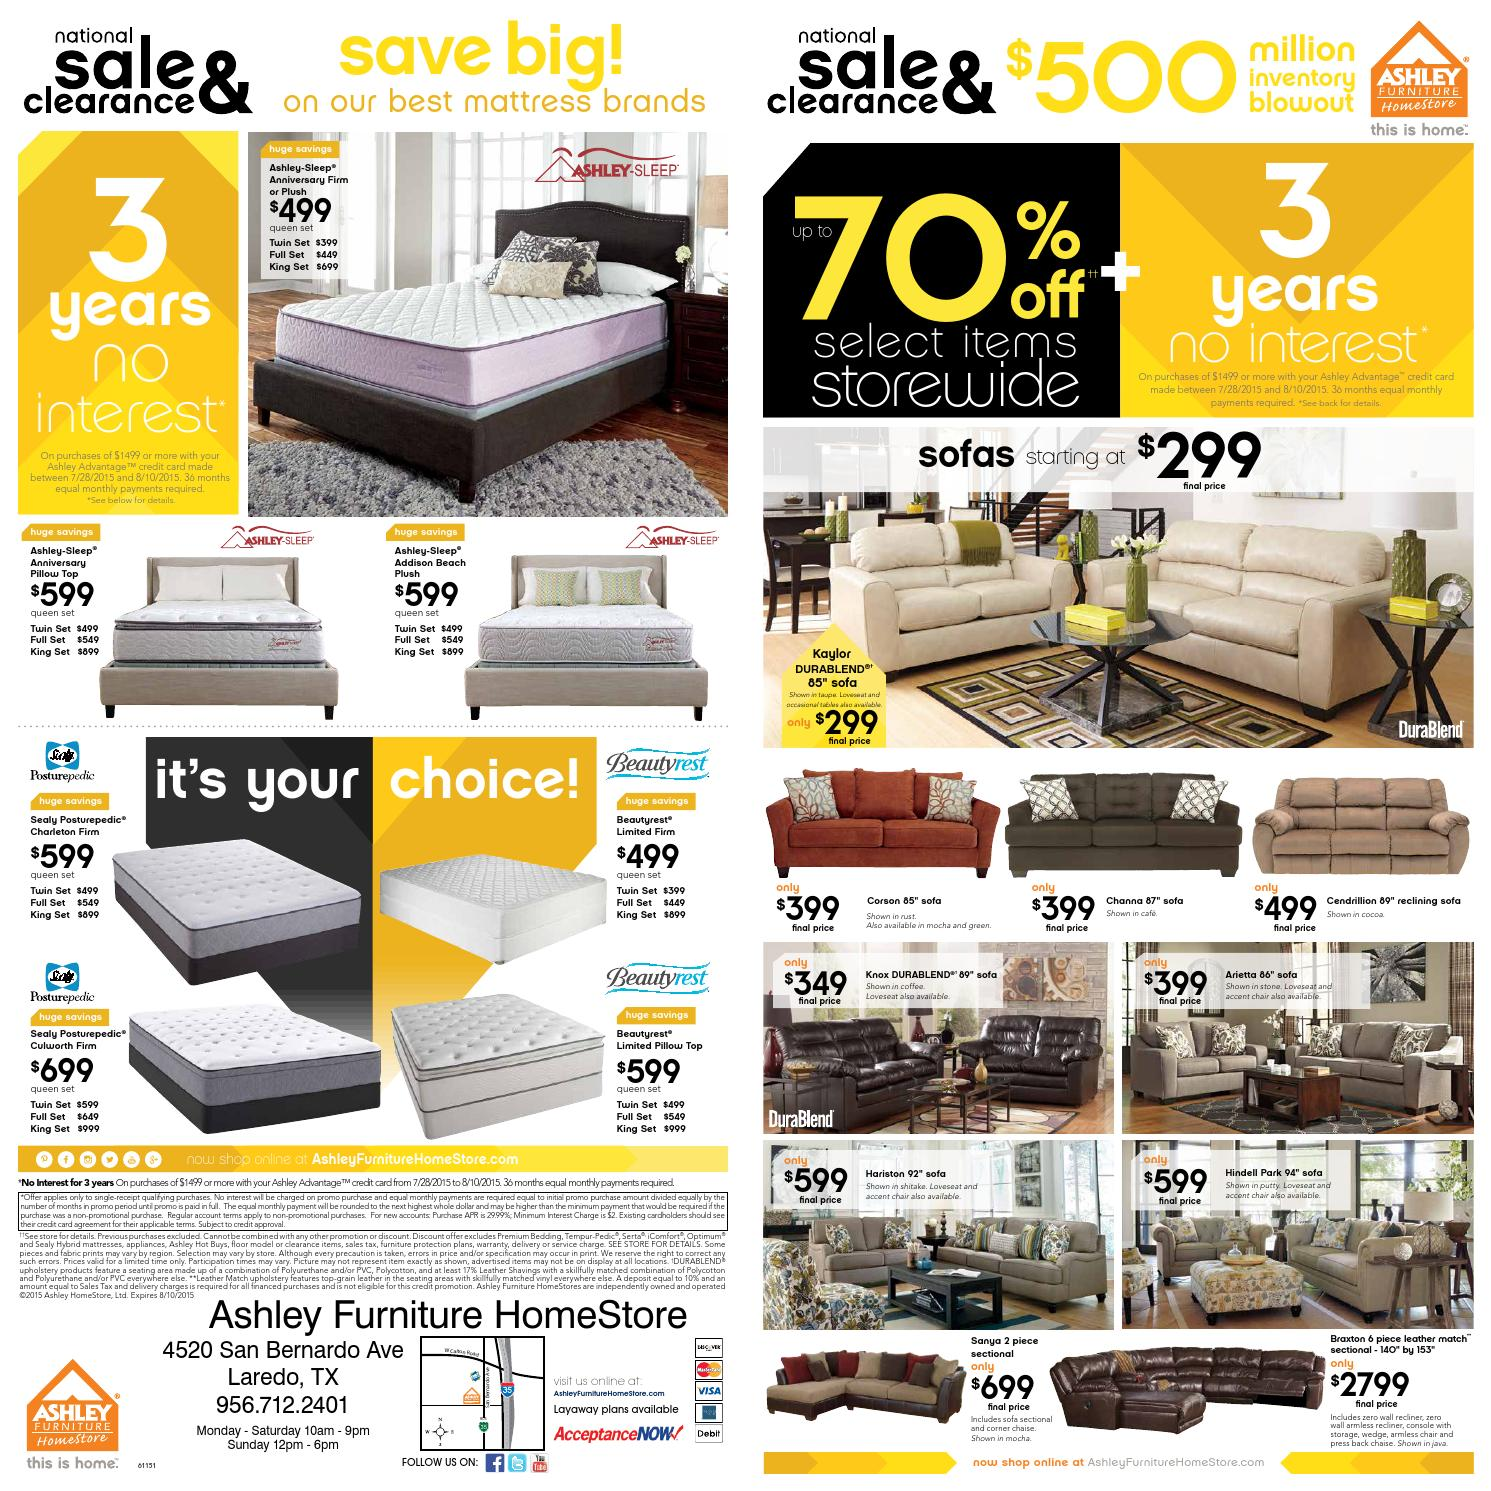 National Sale Clearance By Ashley Furniture Homestore Of Laredo